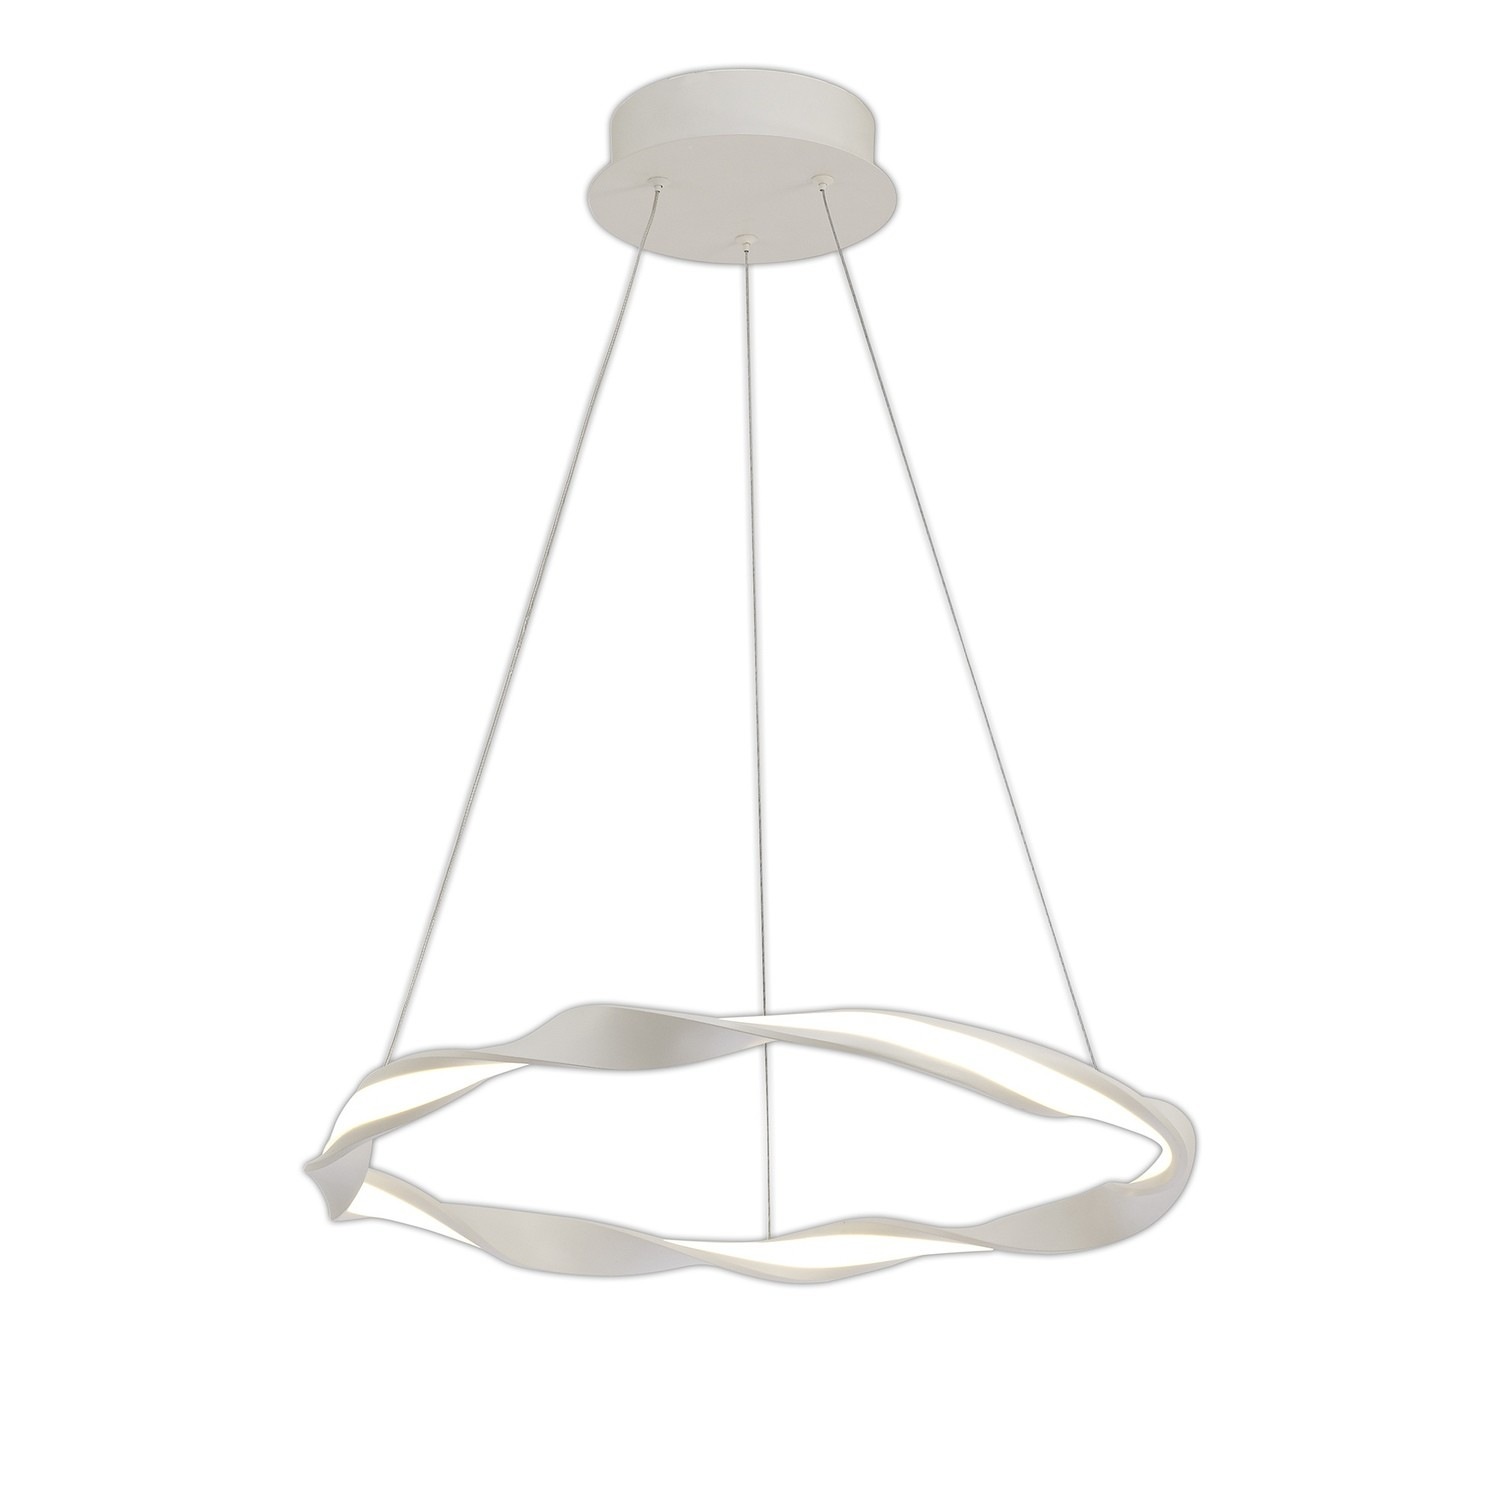 Madagascar Pendant, 24W LED, 3000K, 1680lm, IP20, Sand White, 3yrs Warranty